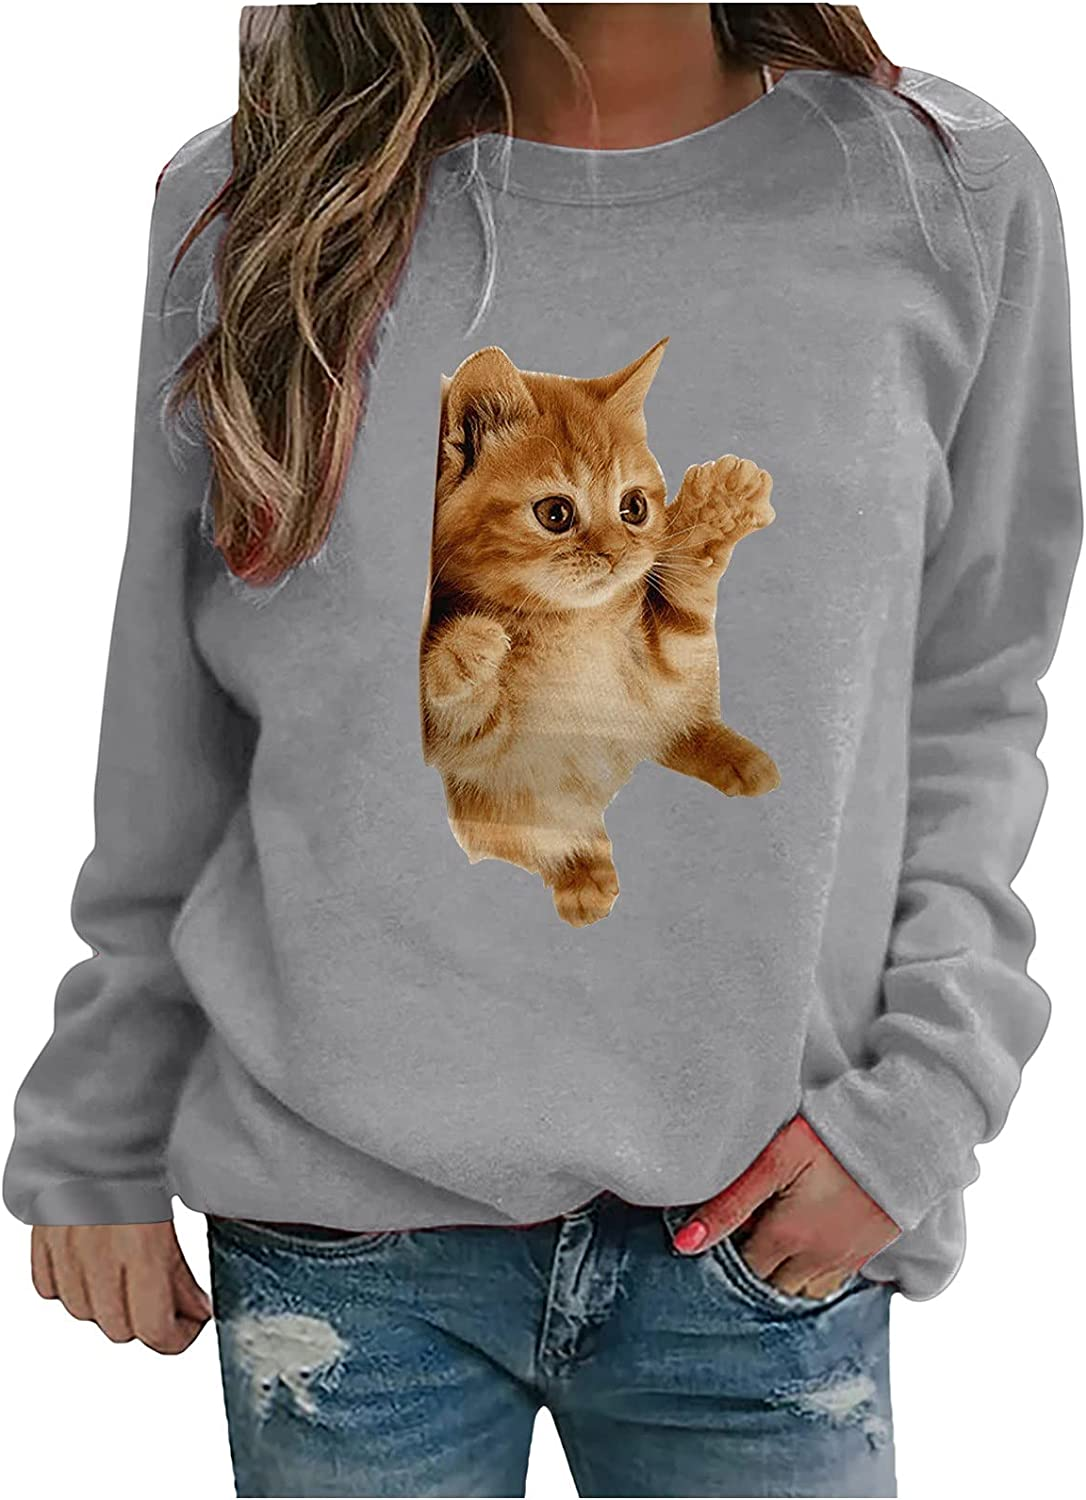 Women's Cute Cat Print Tops Casual Long Sleeve Crewneck Basic Shirt Loose Fitted Pullover Graphic Tee Fall Sweatshirt